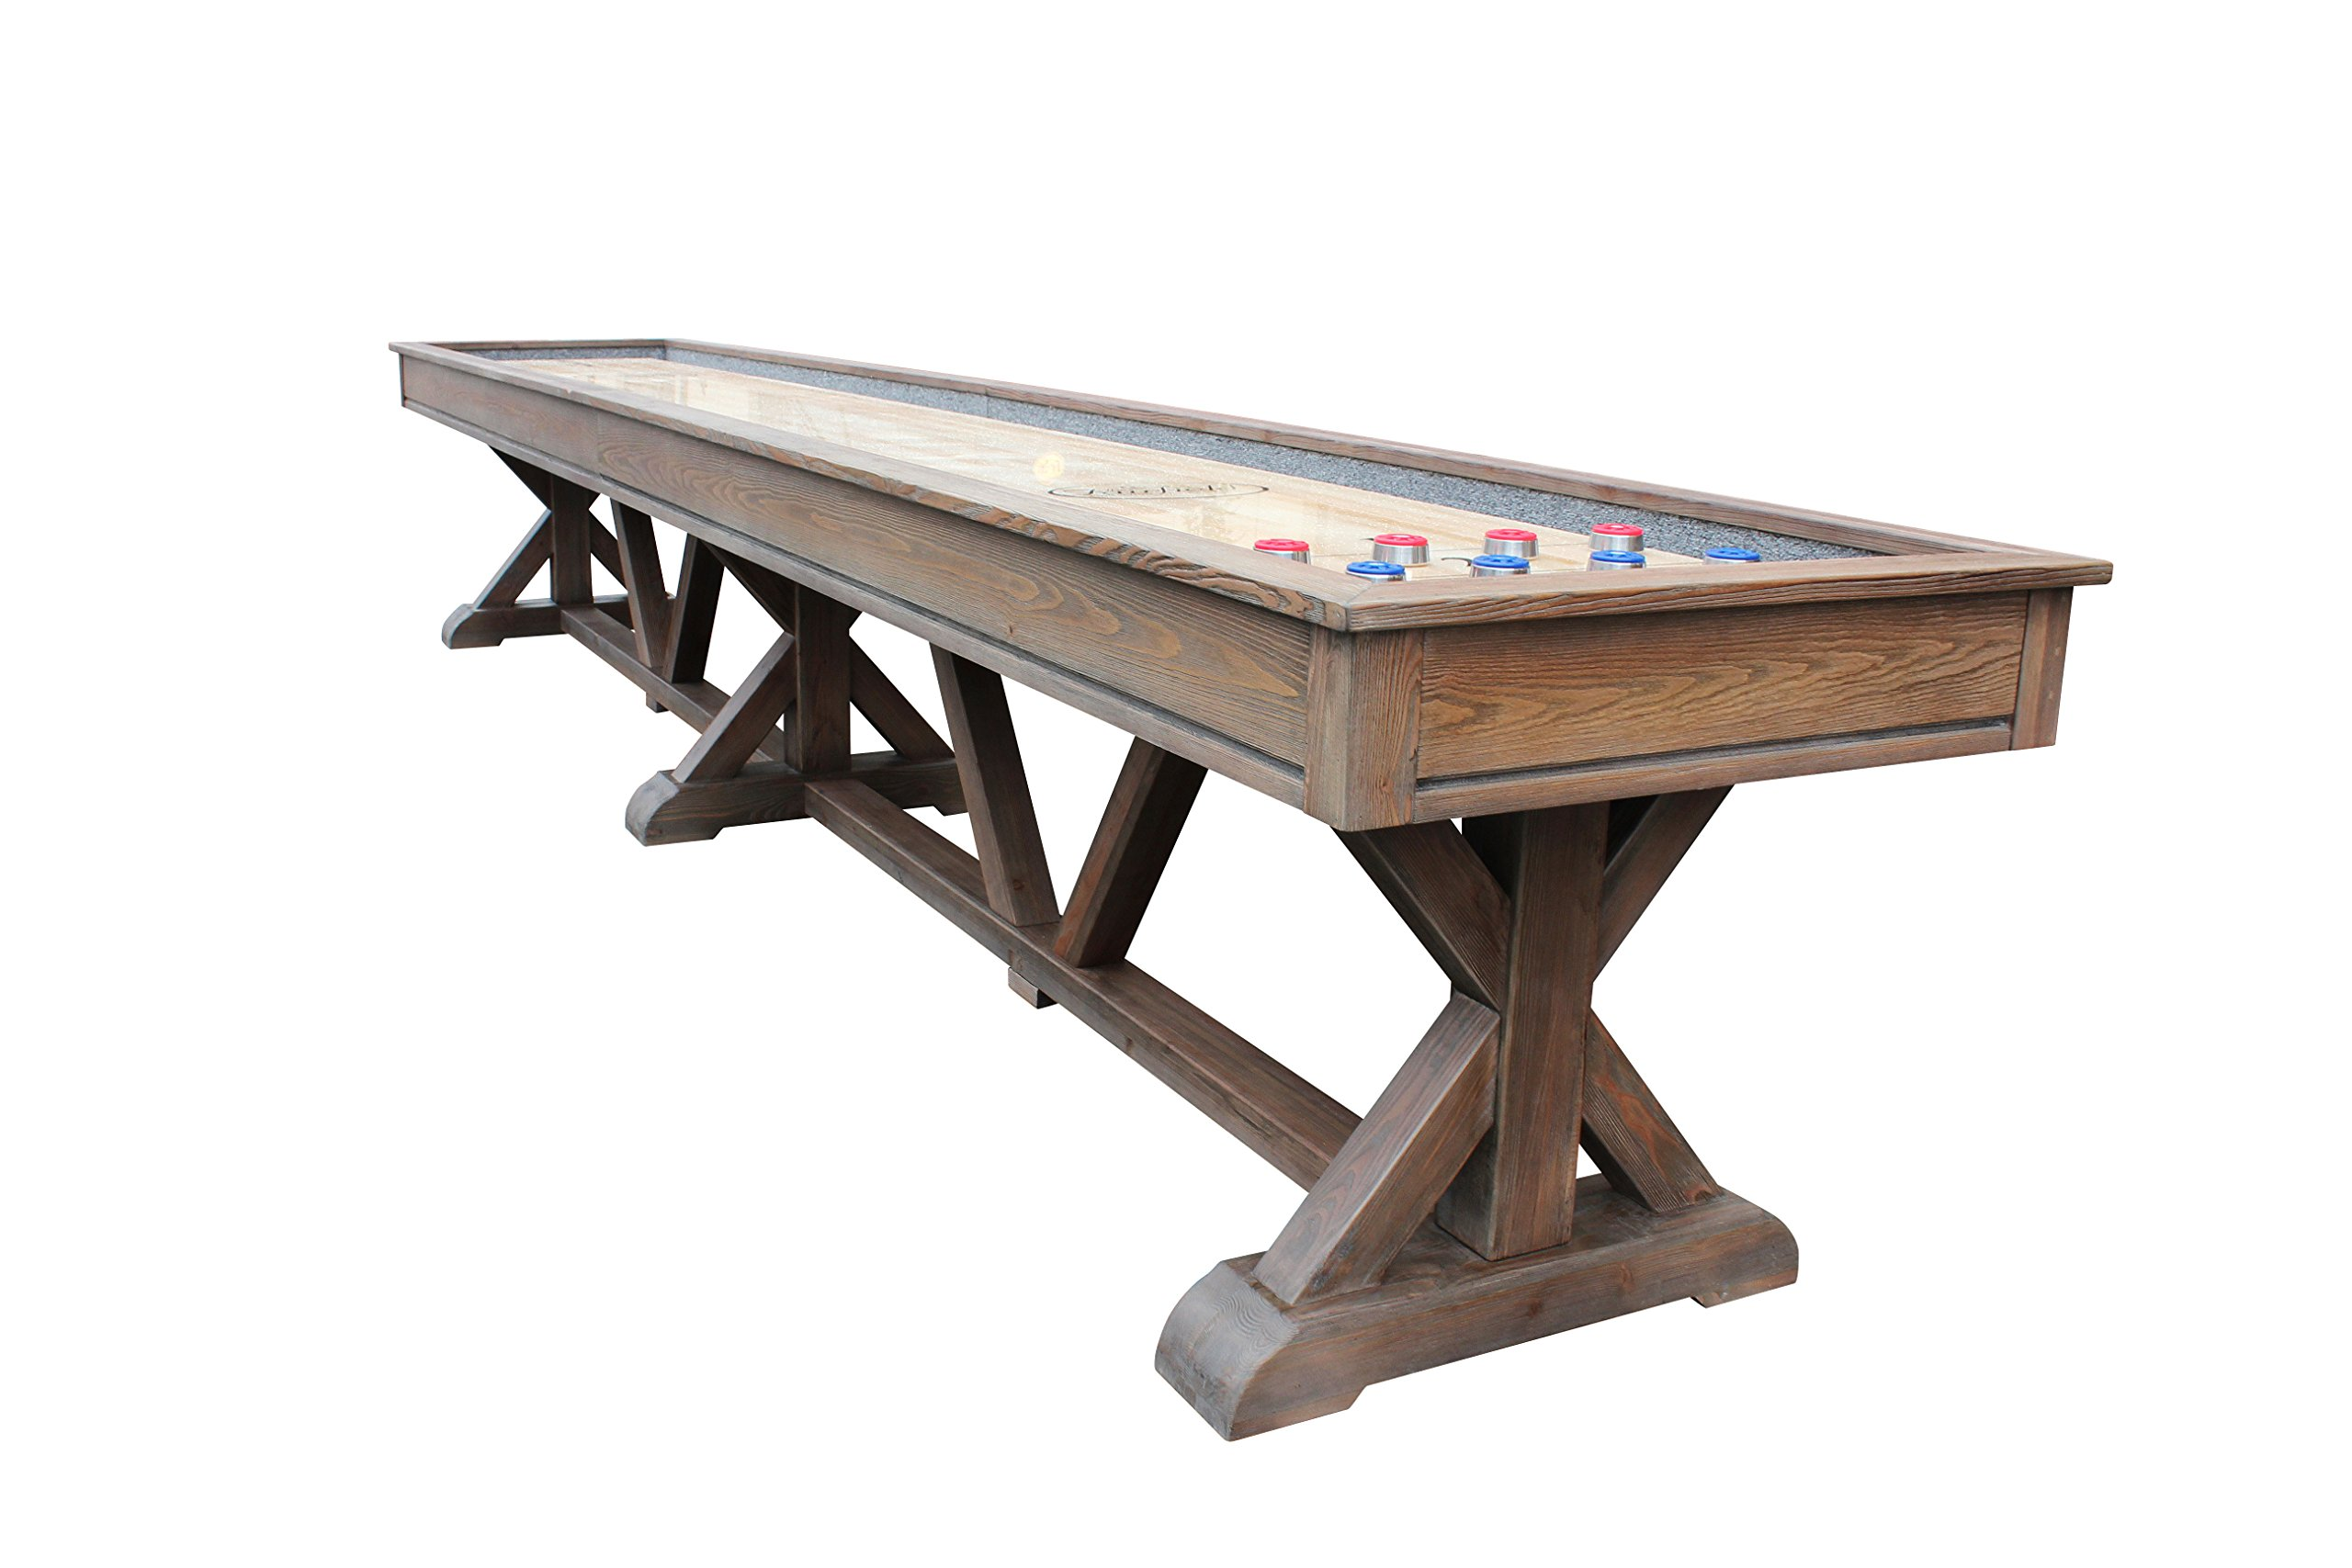 Playcraft Brazos River Weathered Barn 16' Pro-Style Shuffleboard Table by Playcraft